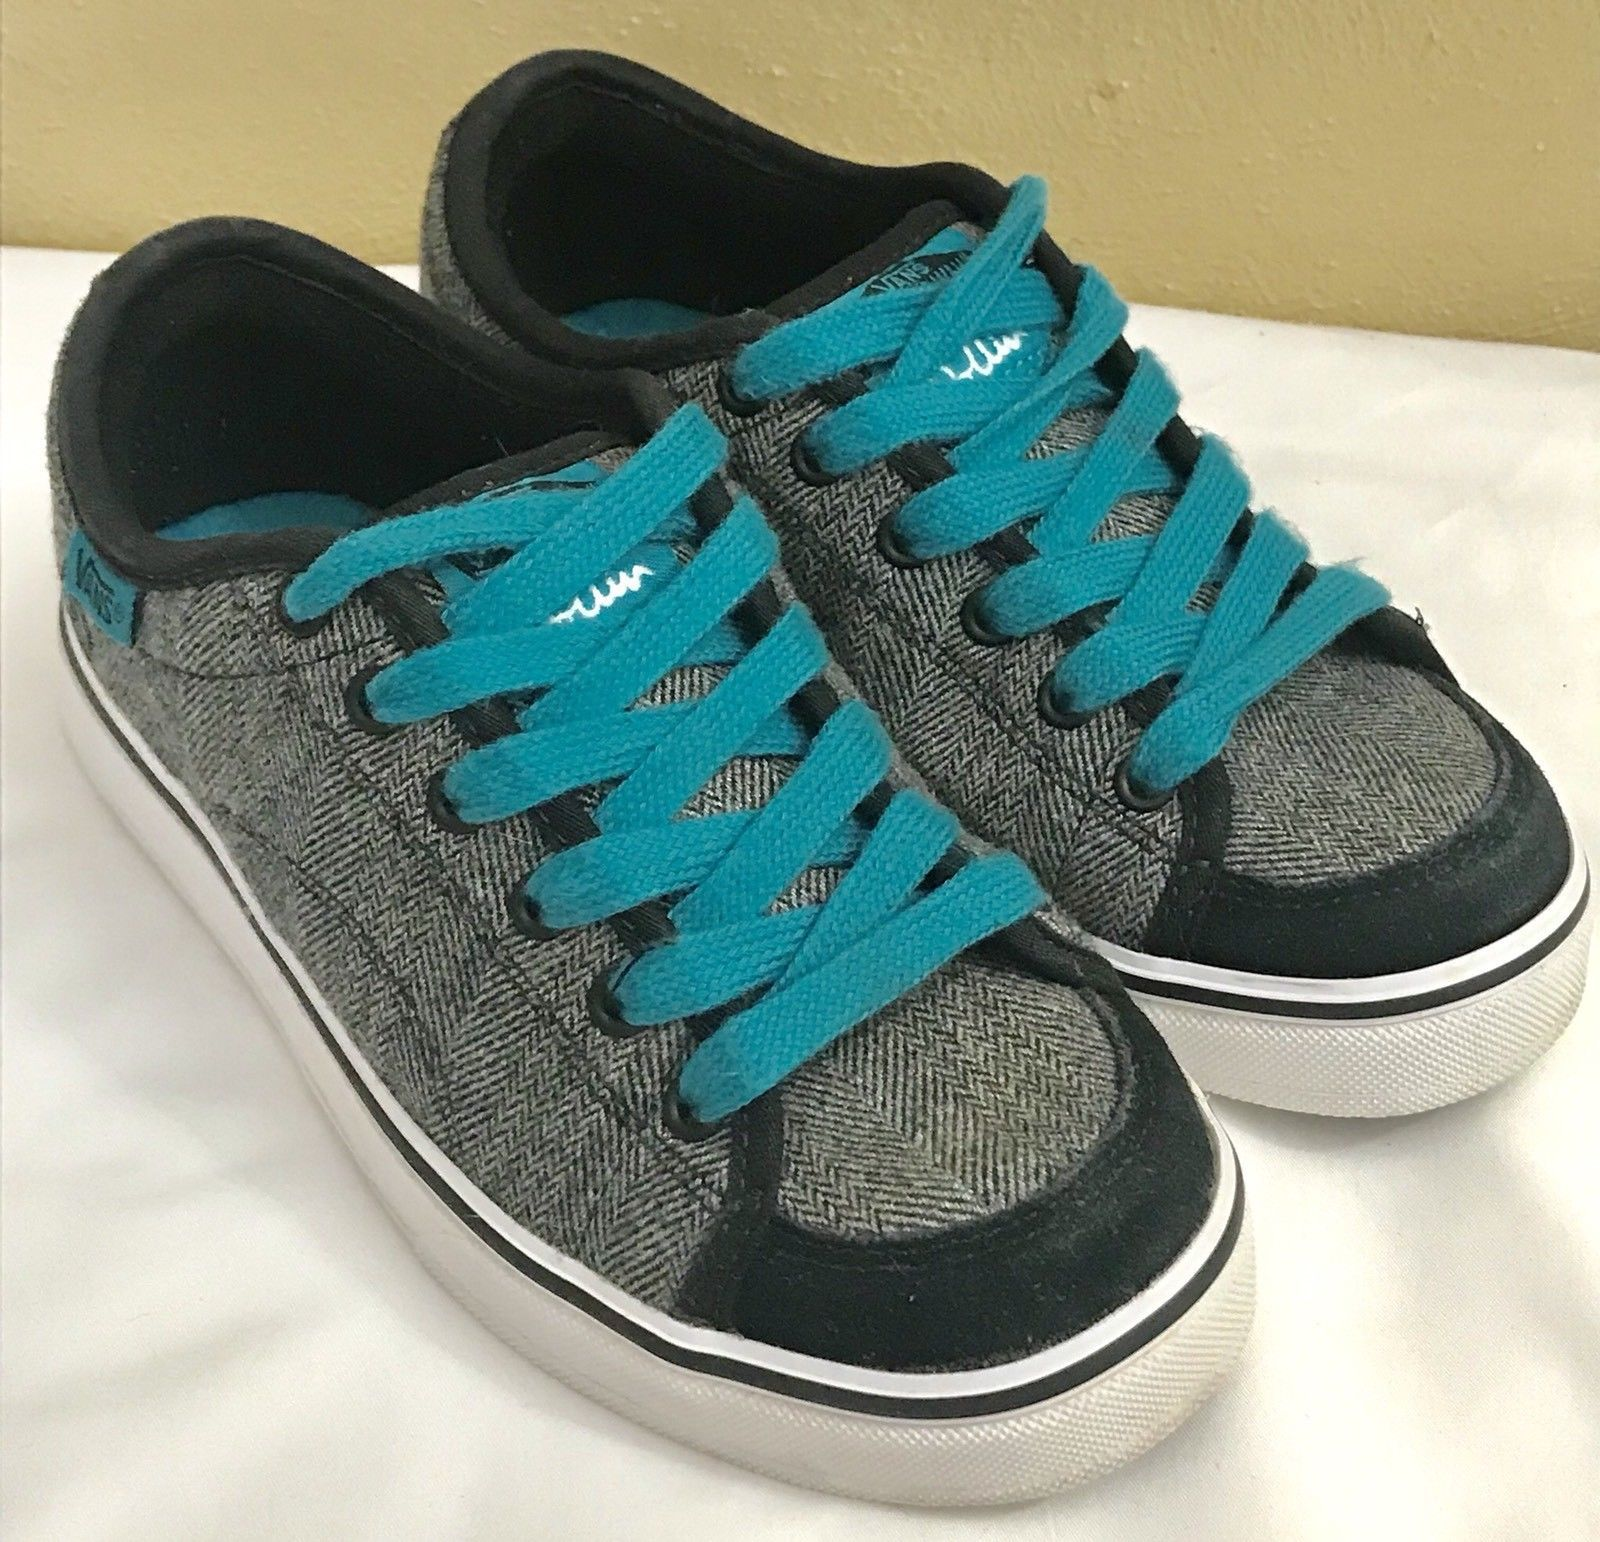 91050502b61dec Vans Of The Wall Dollin Plaid Black White and 50 similar items